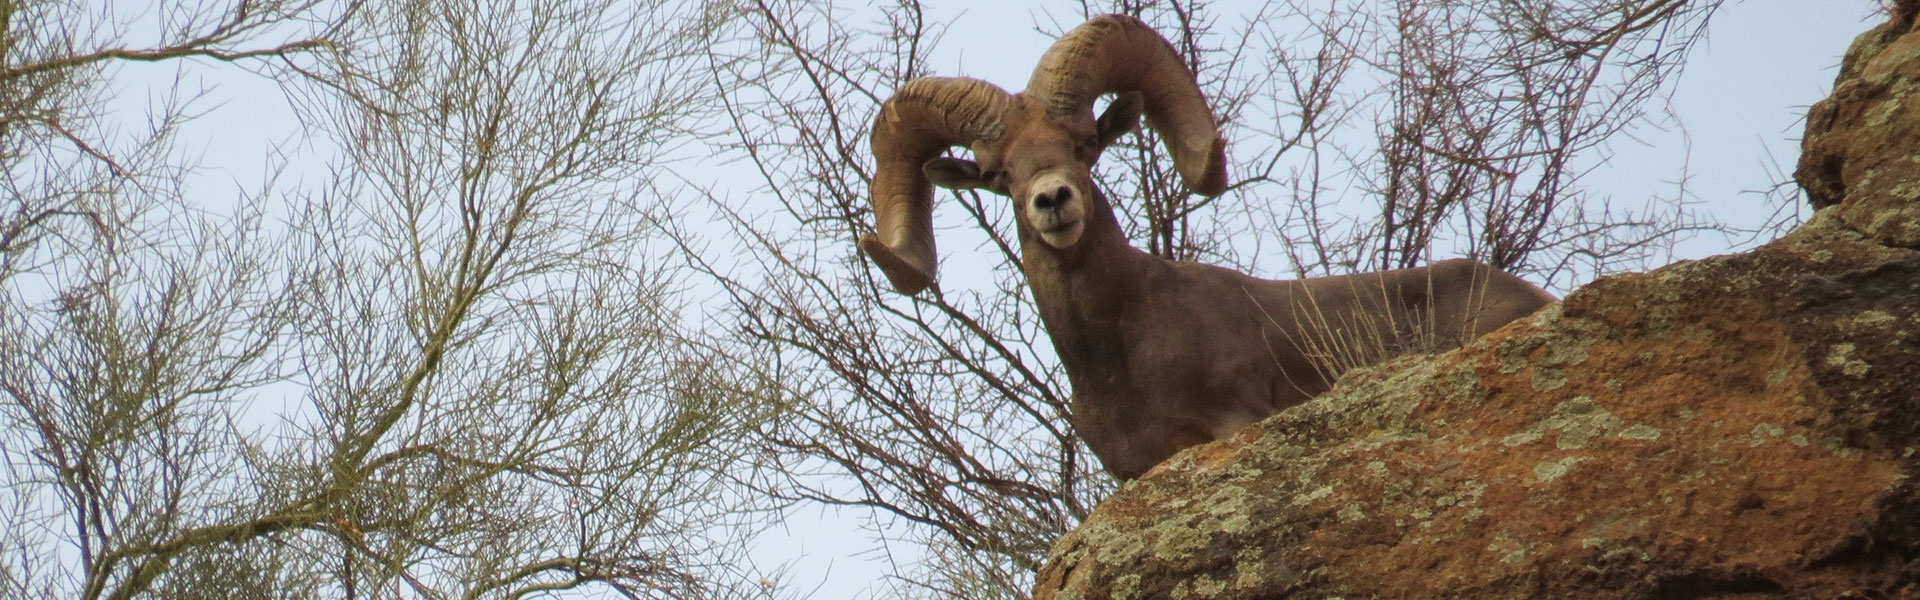 Arizona Sheep Hunts